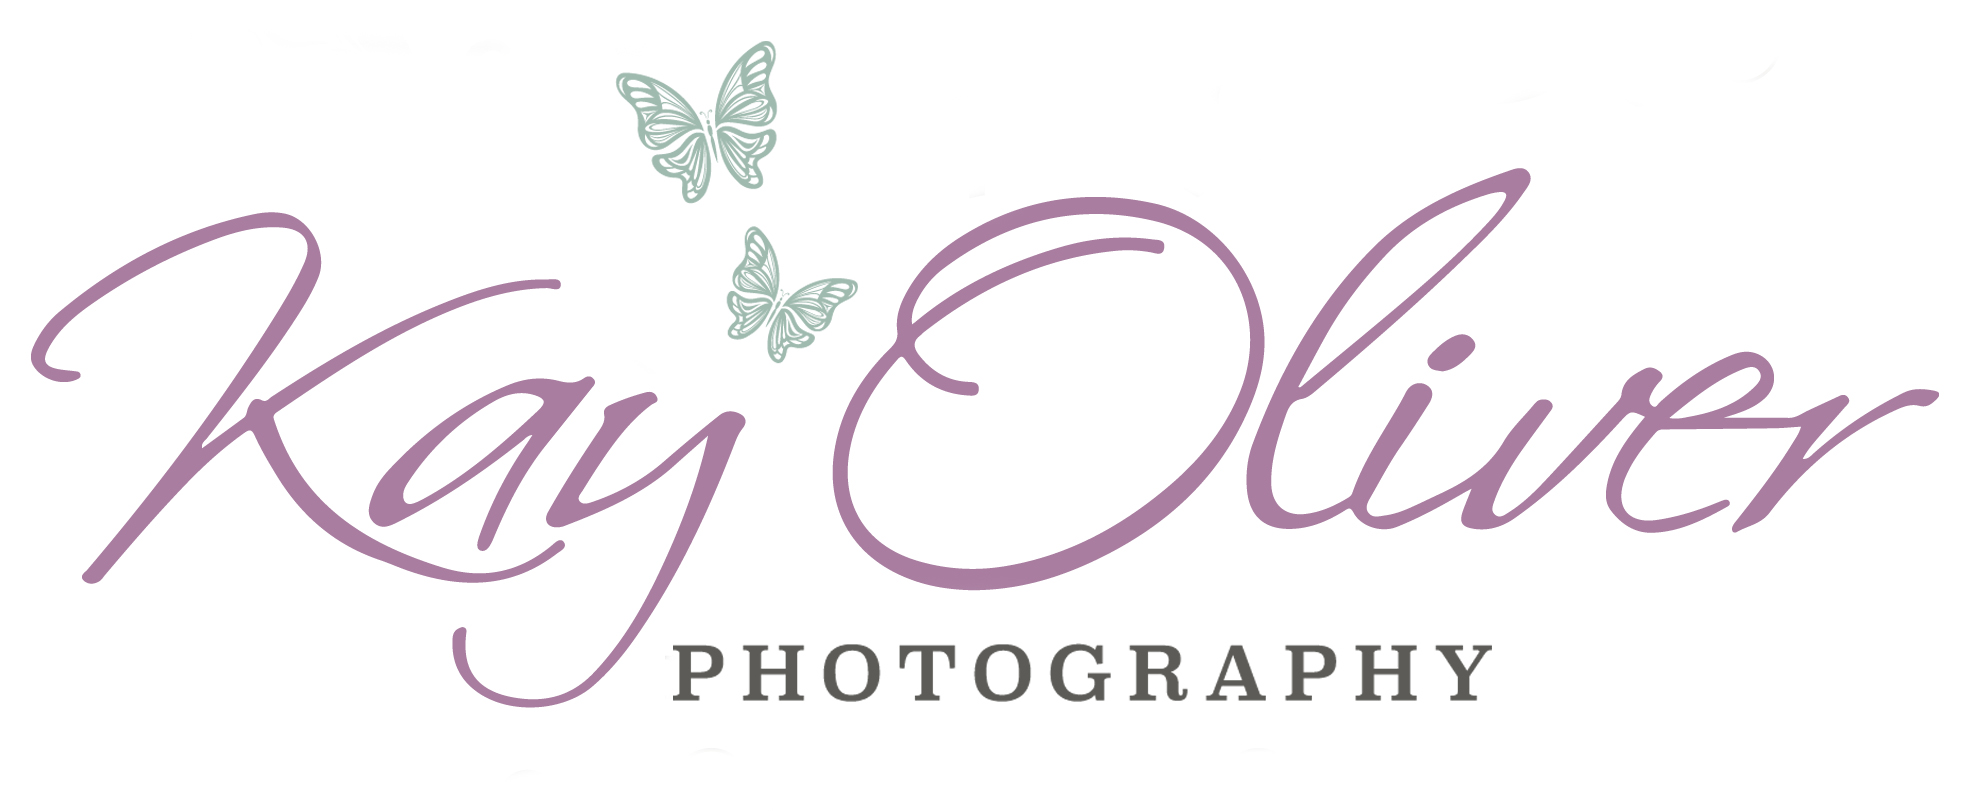 Kay Oliver Photo Butterfly logo